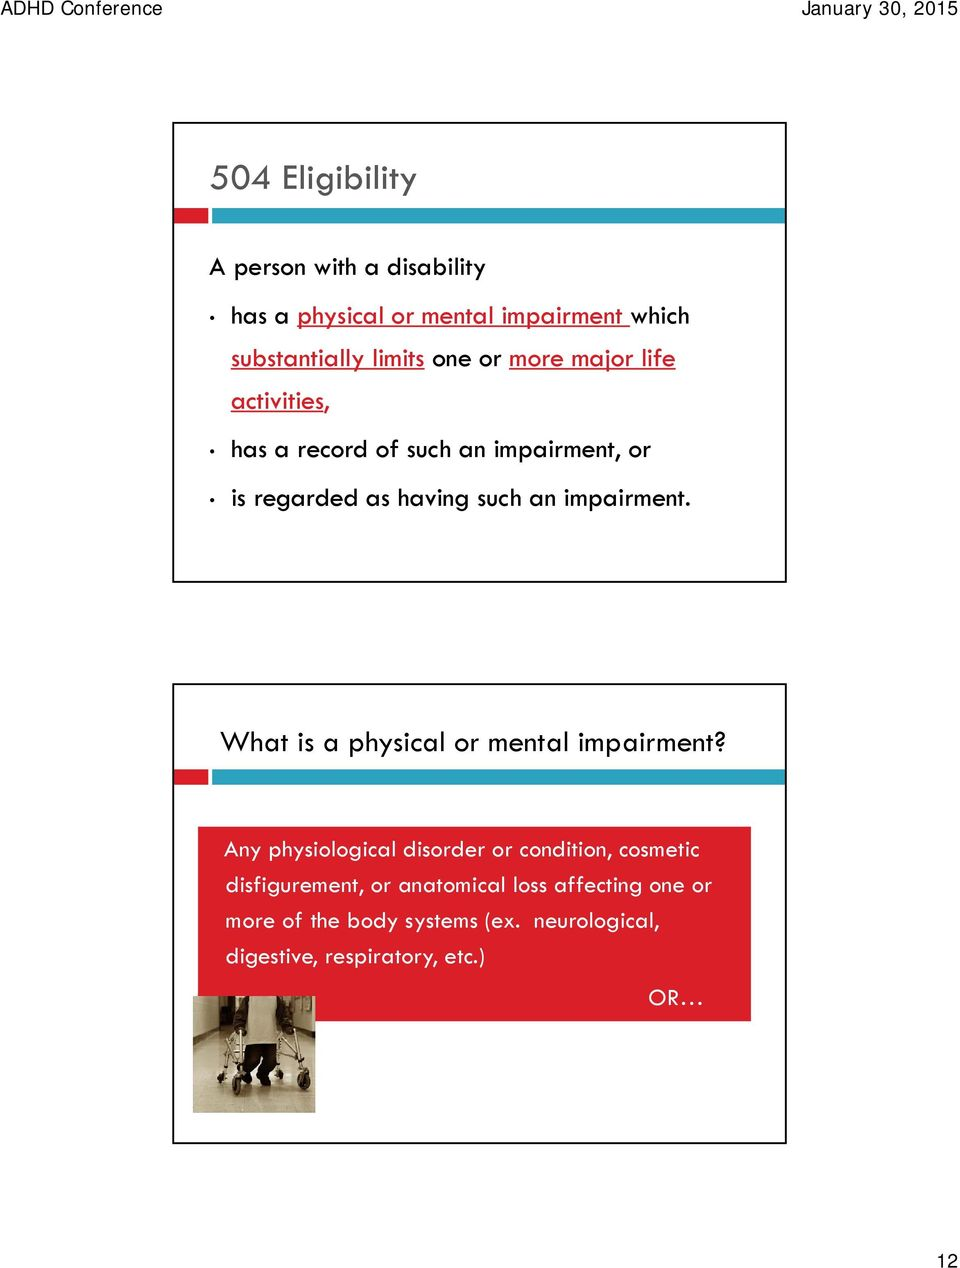 What is a physical or mental impairment?